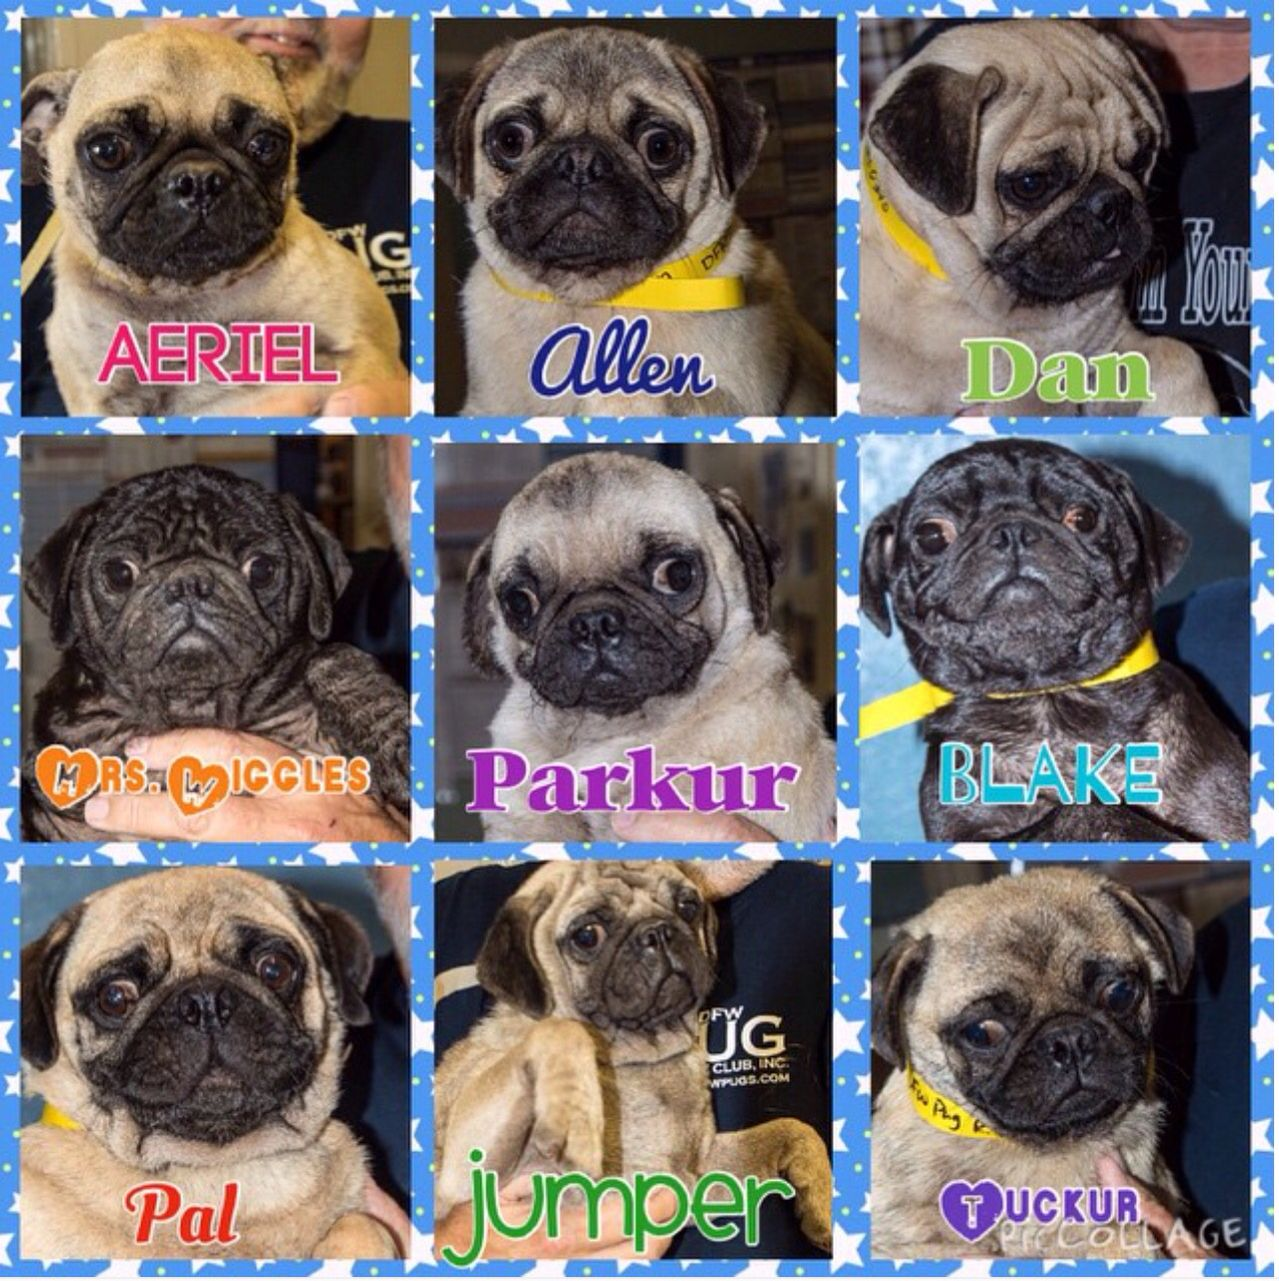 Dfw Pug Rescue Have You Seen Some Of The Precious Puggy Faces